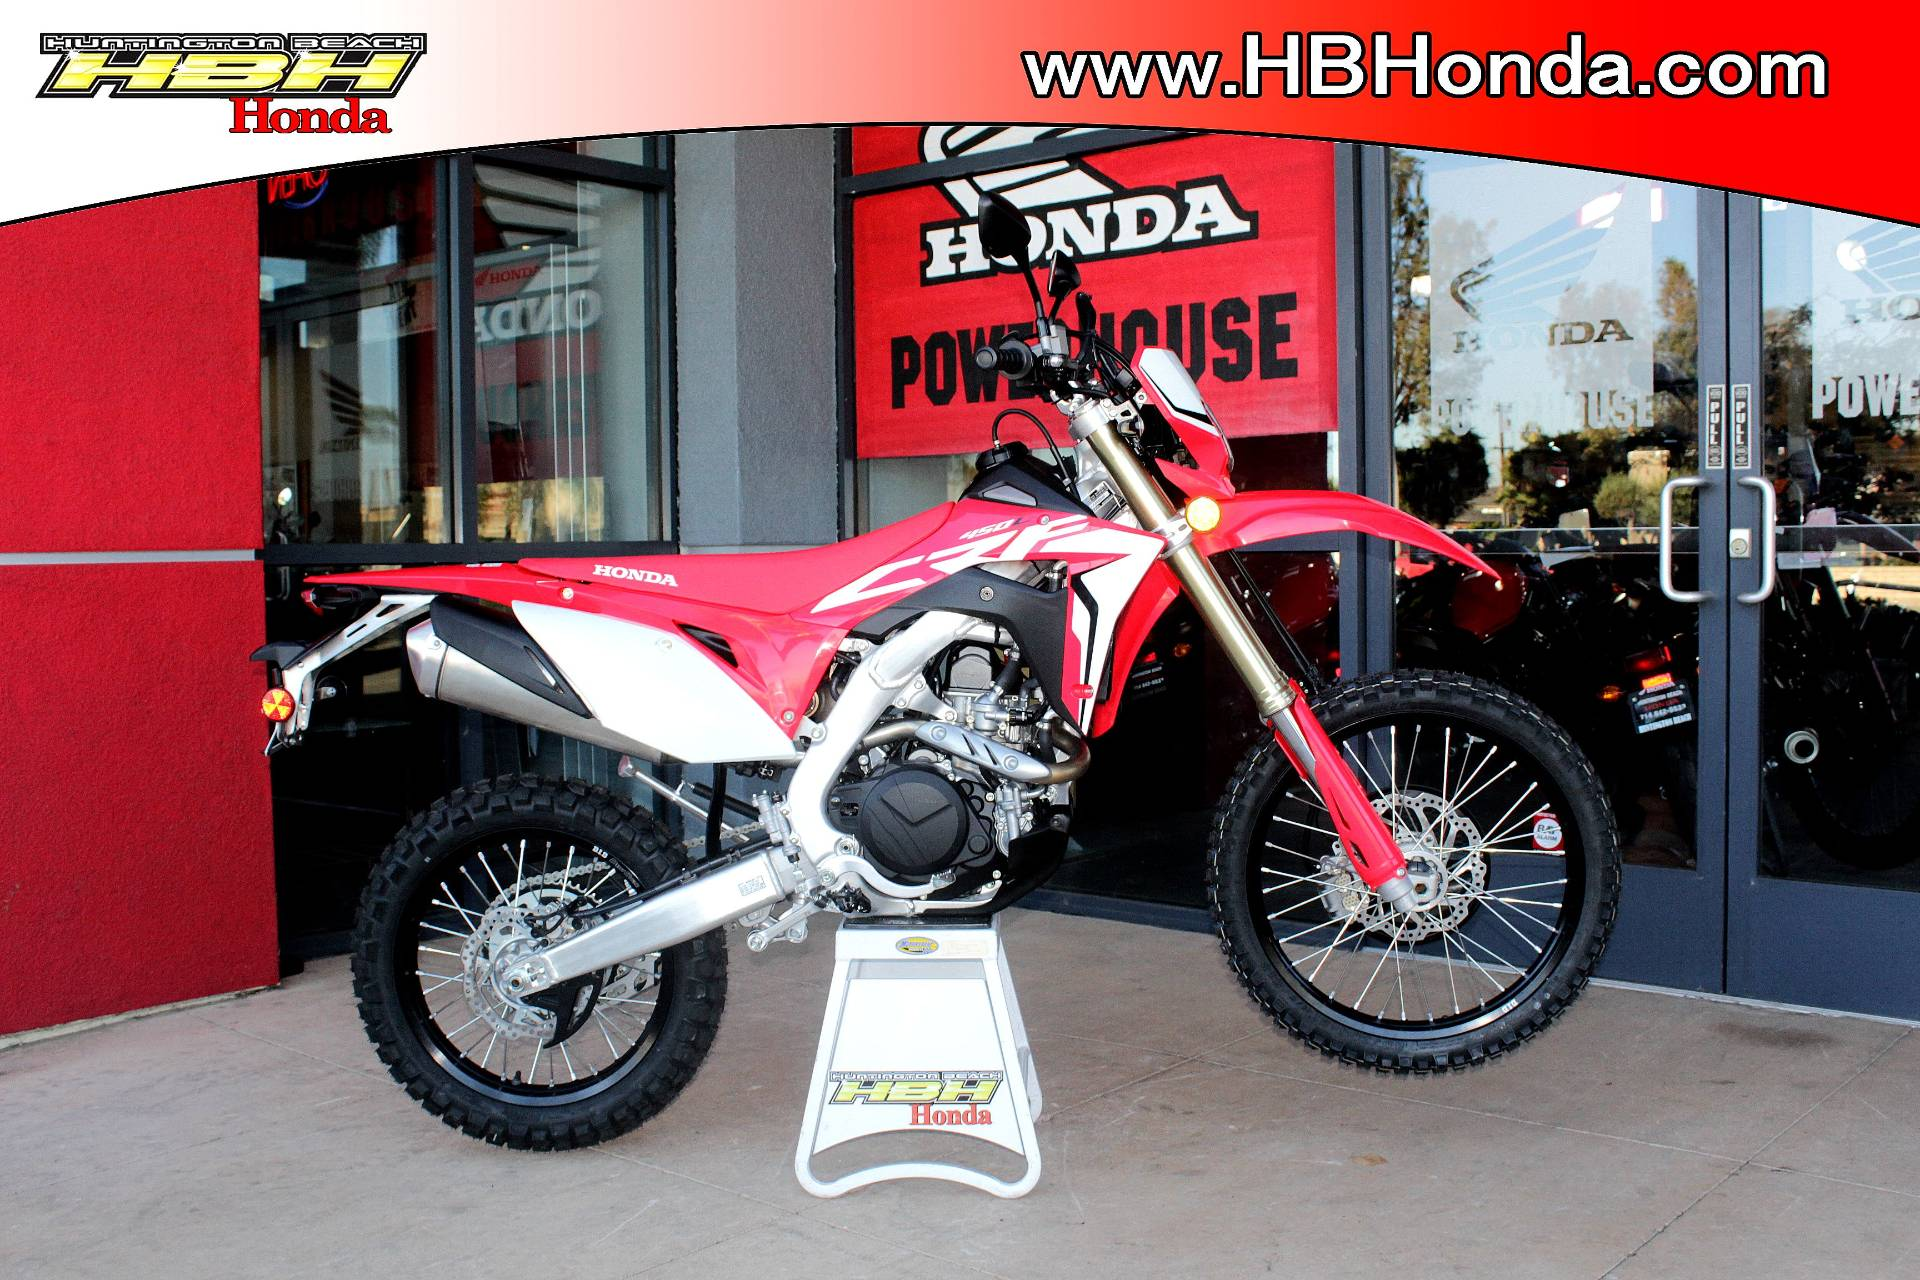 New 2019 Honda Crf450l Motorcycles For Sale In Huntington Beach Ca